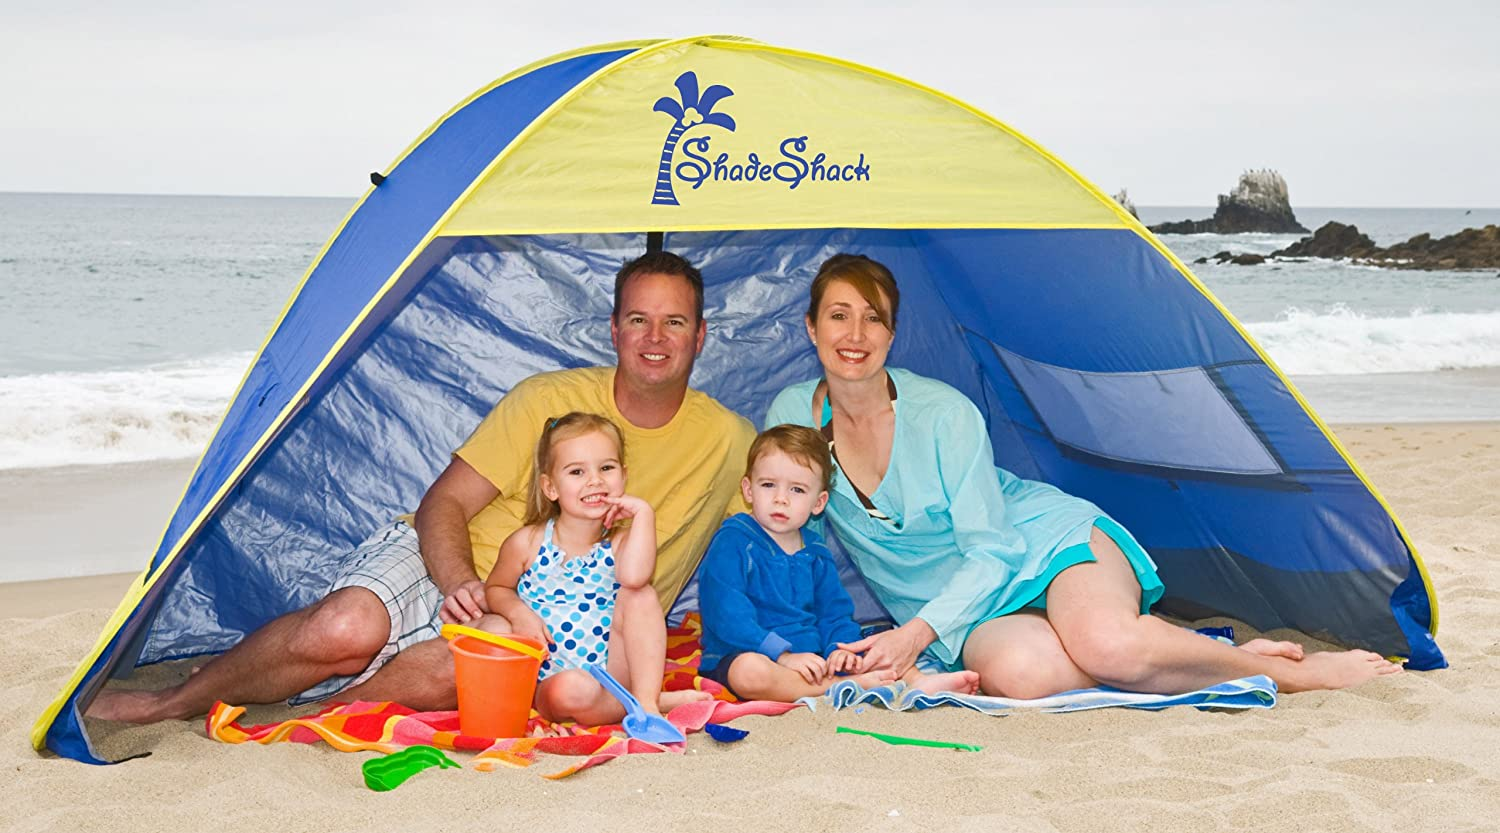 Shade Shack Beach Tent Easy Automatic Instant Pop Up Sun Shelter